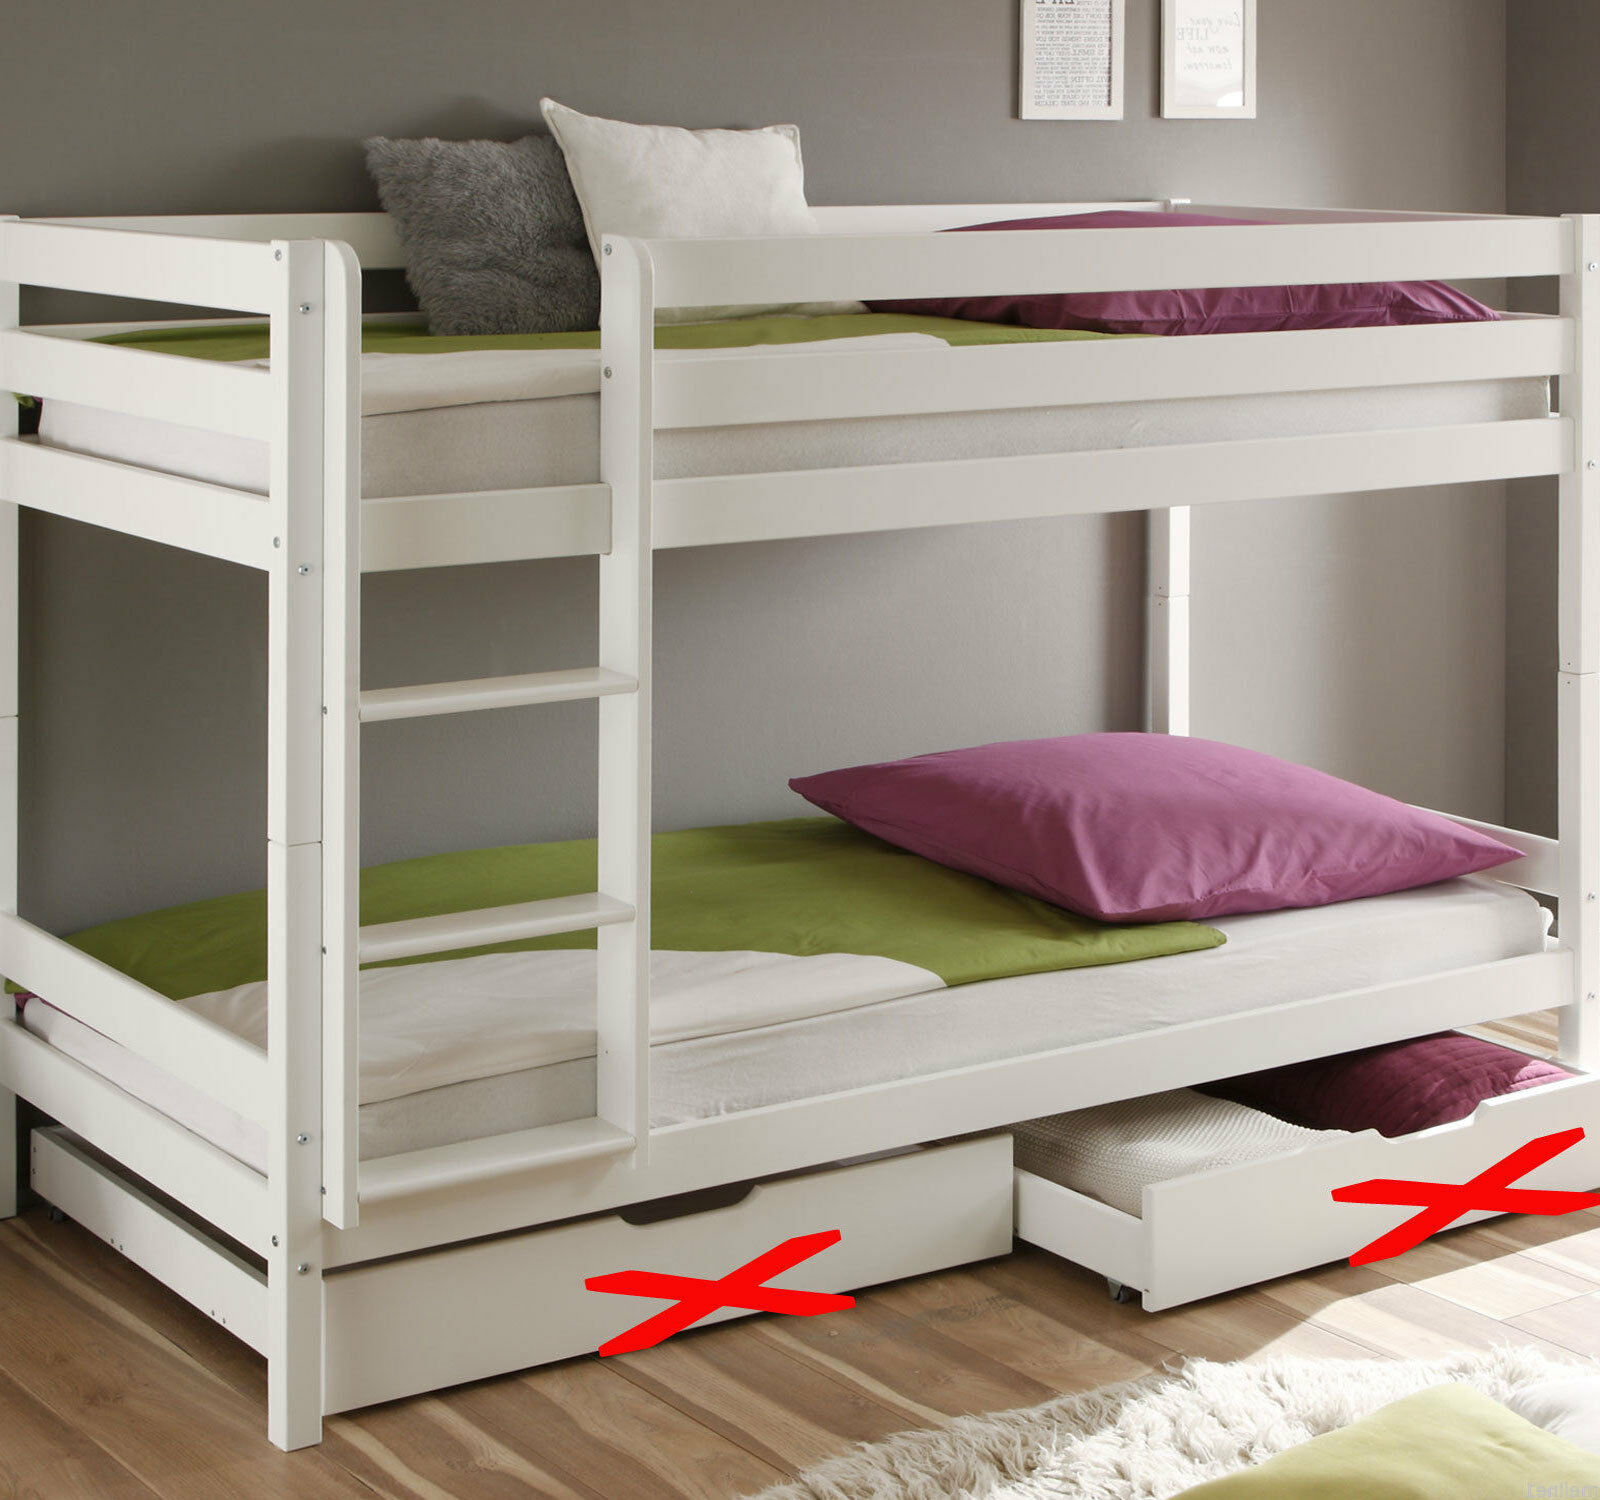 kinderbett etagenbett weiss hochbett spielbett massiv. Black Bedroom Furniture Sets. Home Design Ideas